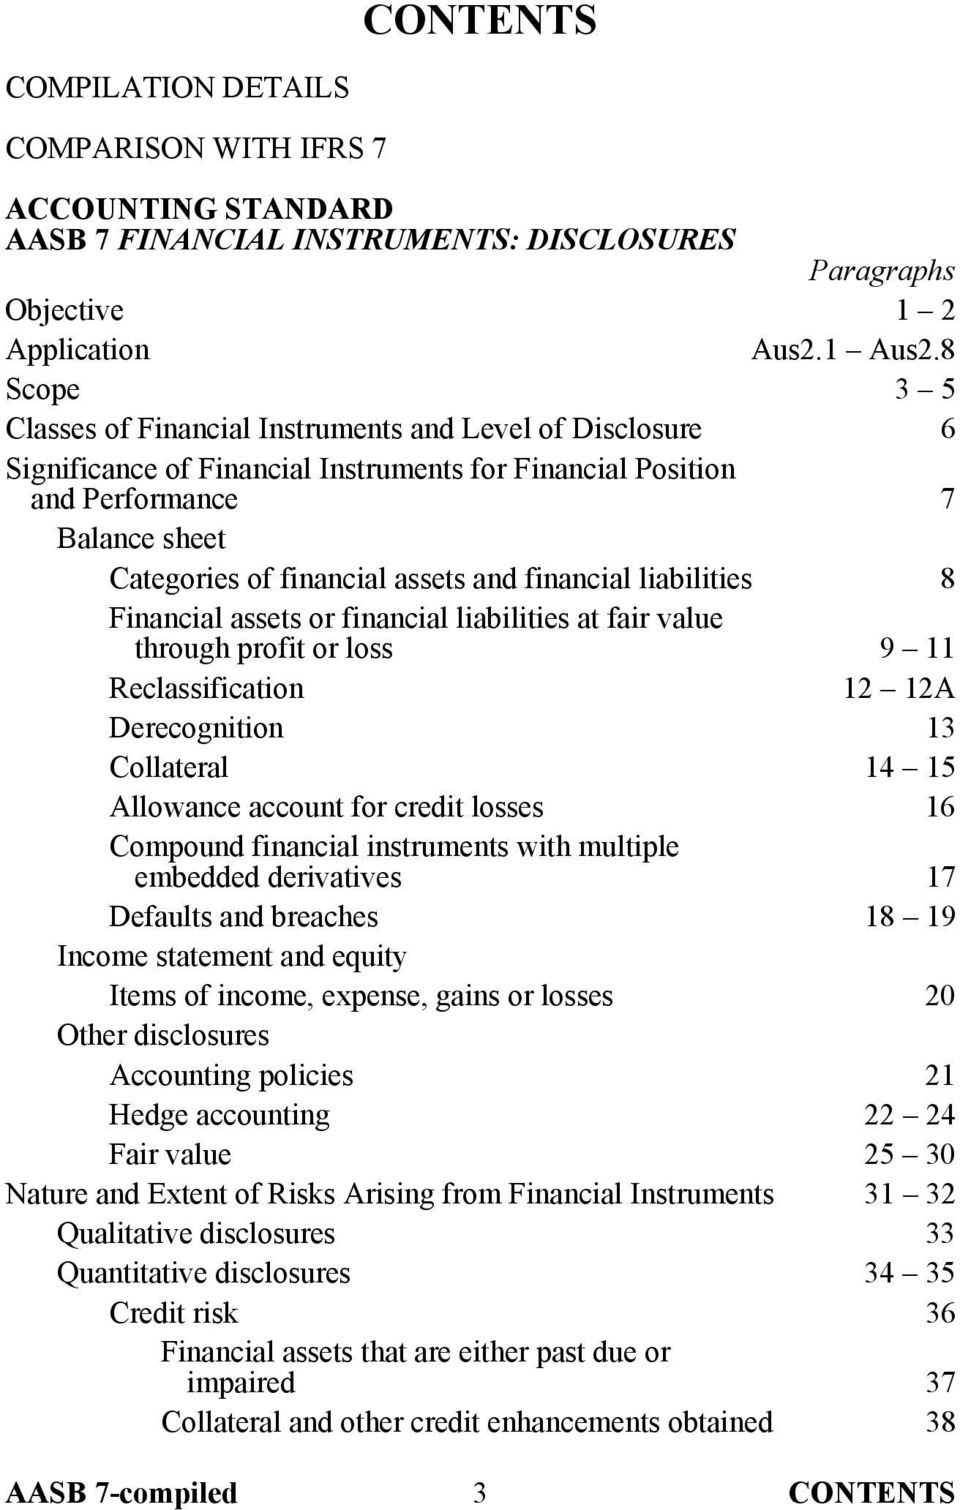 financial liabilities 8 Financial assets or financial liabilities at fair value through profit or loss 9 11 Reclassification 12 12A Derecognition 13 Collateral 14 15 Allowance account for credit